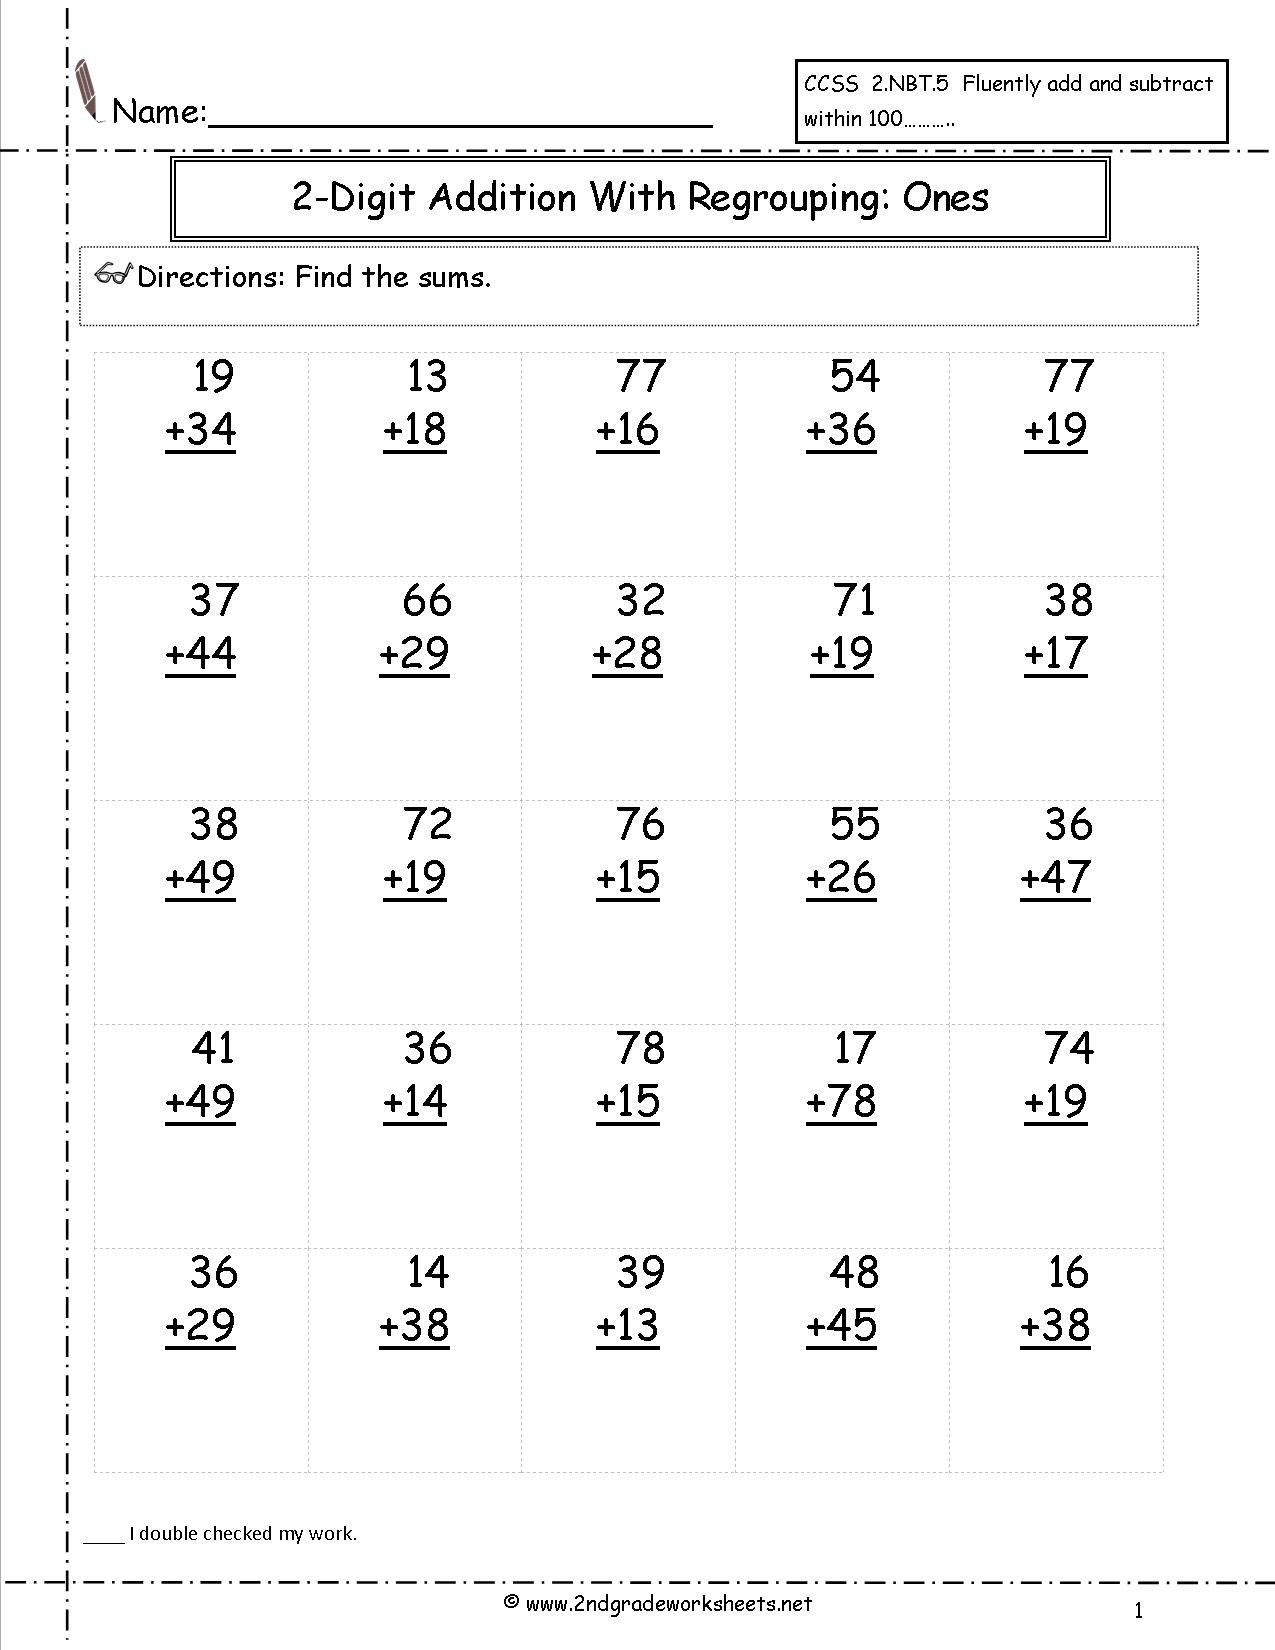 Free Printable Math Worksheets For 2nd Grade